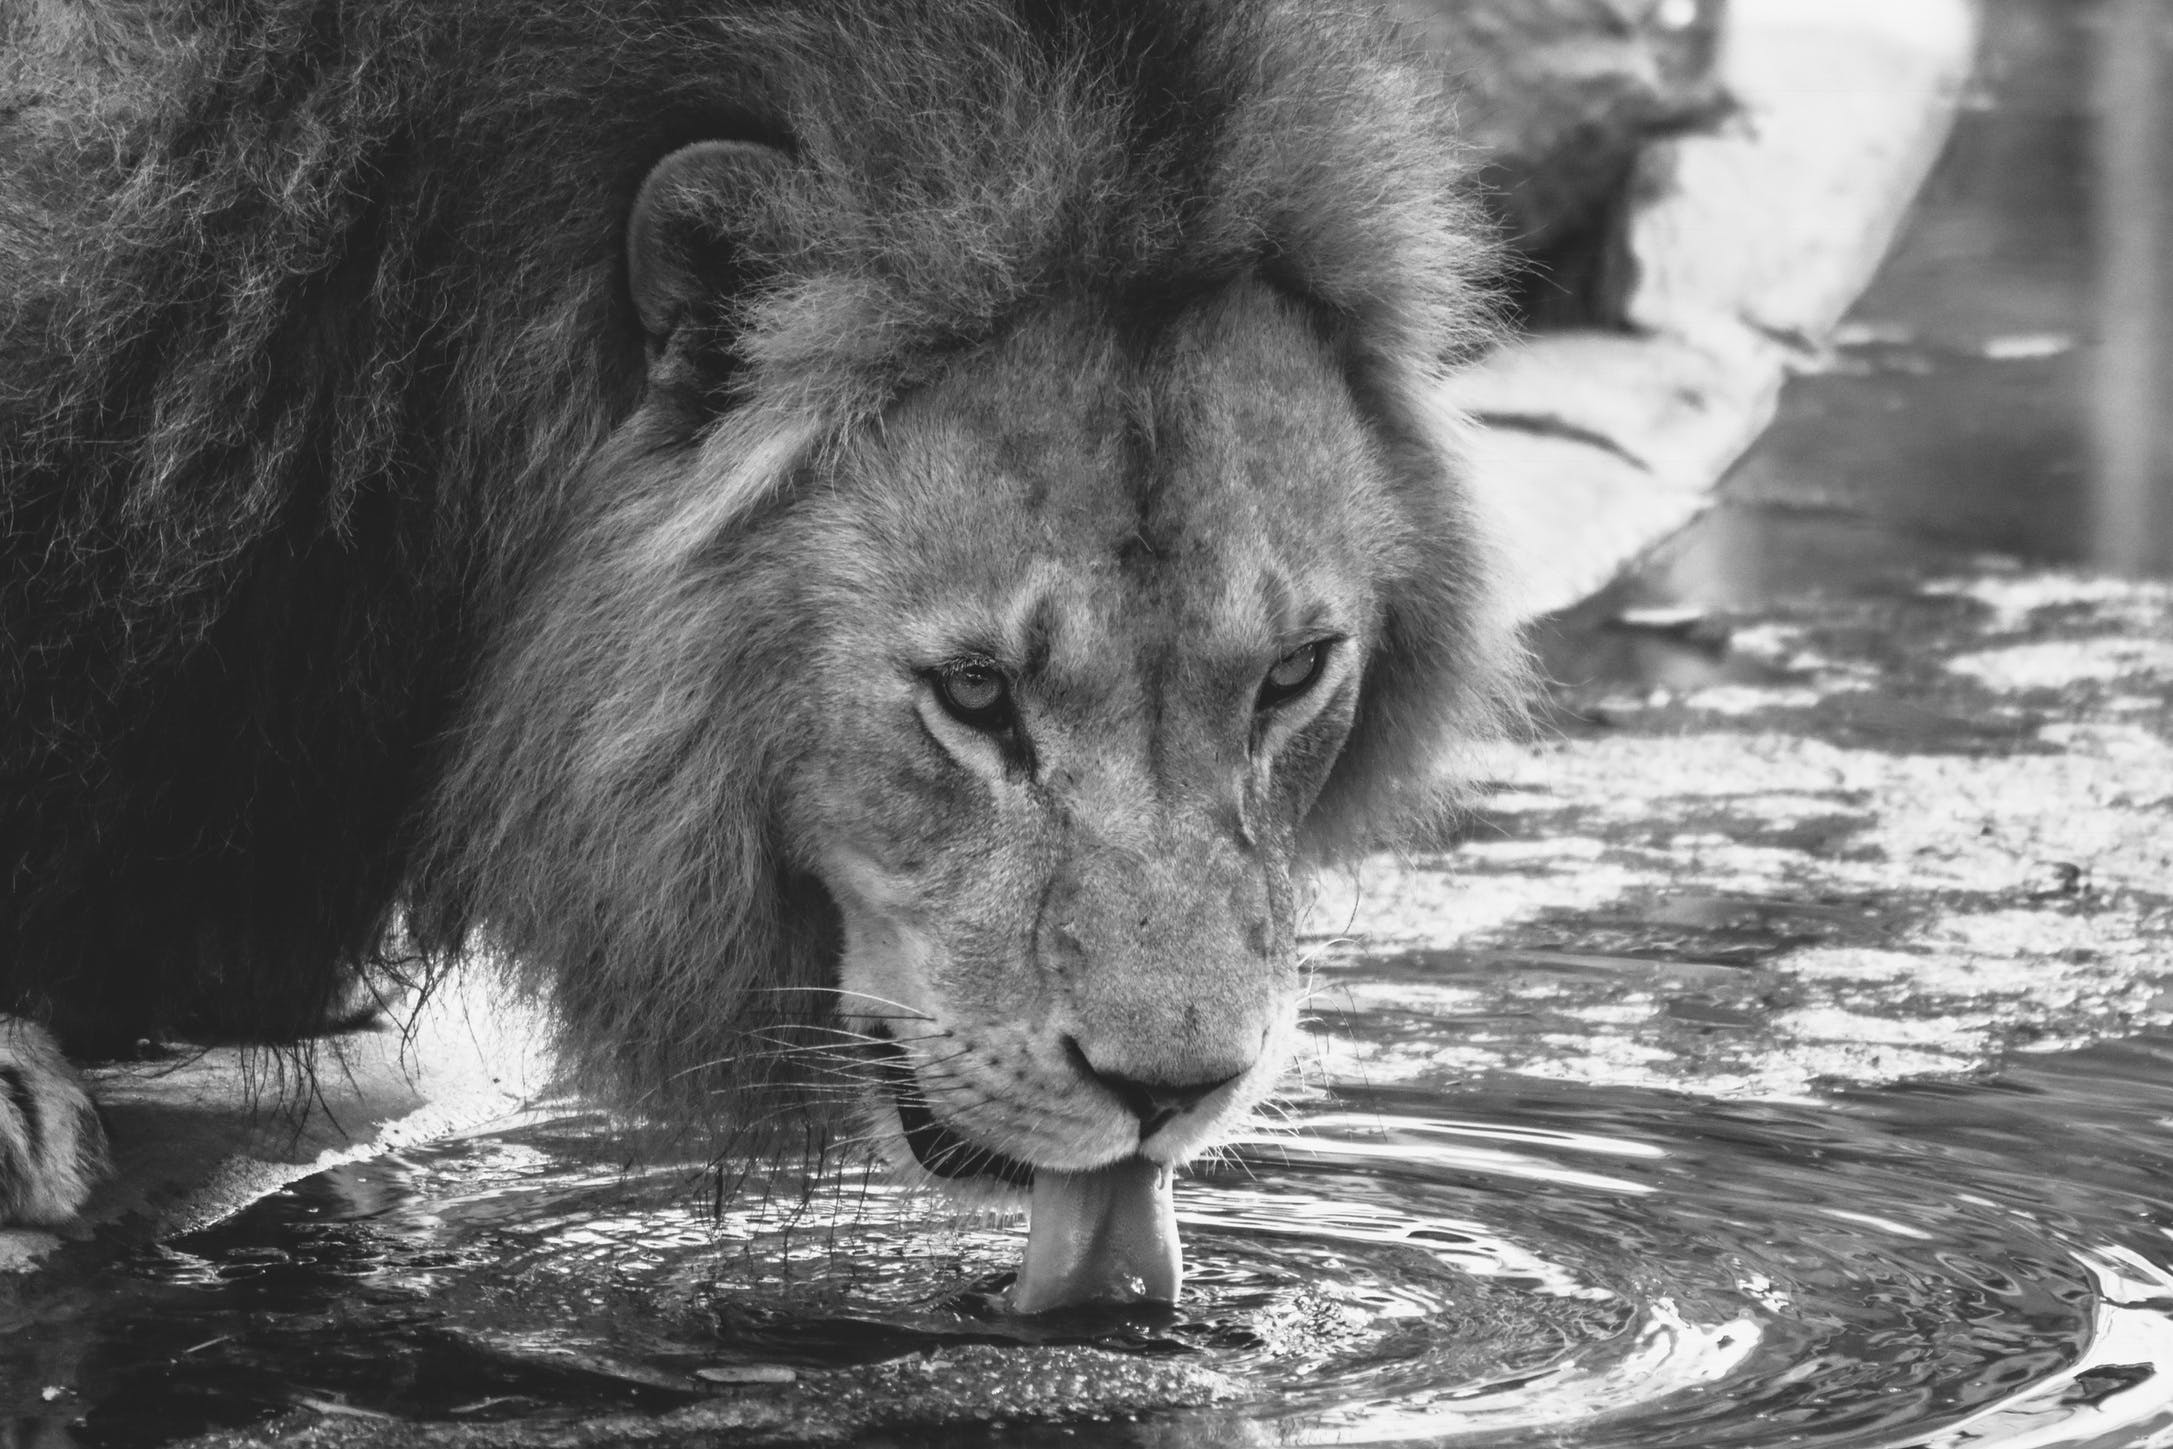 Grayscale Lion Drinking Water